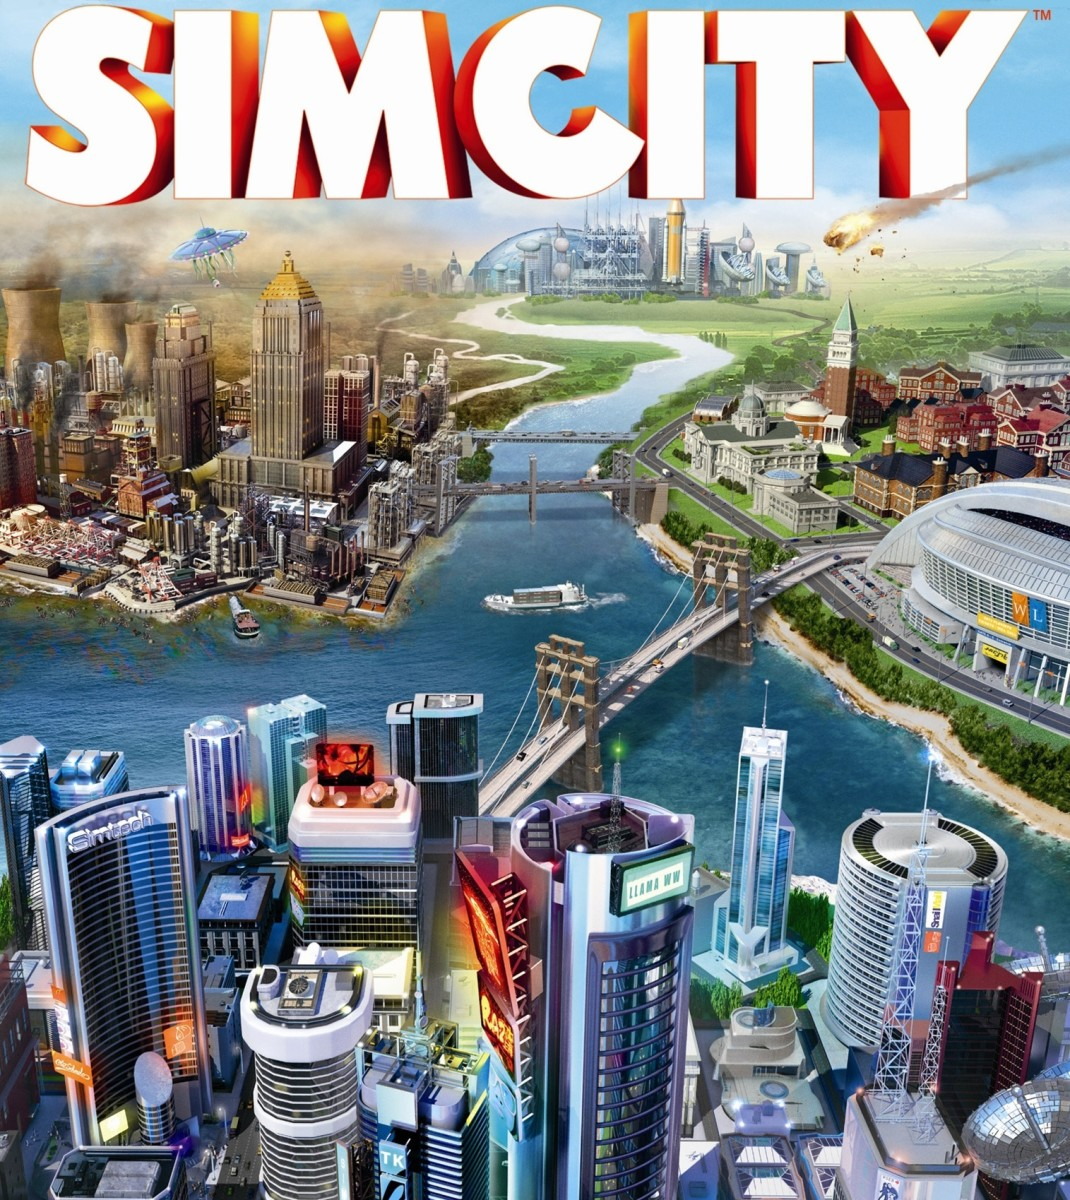 Drill Baby Drill - A Petroleum Specialization Guide for SimCity 2013